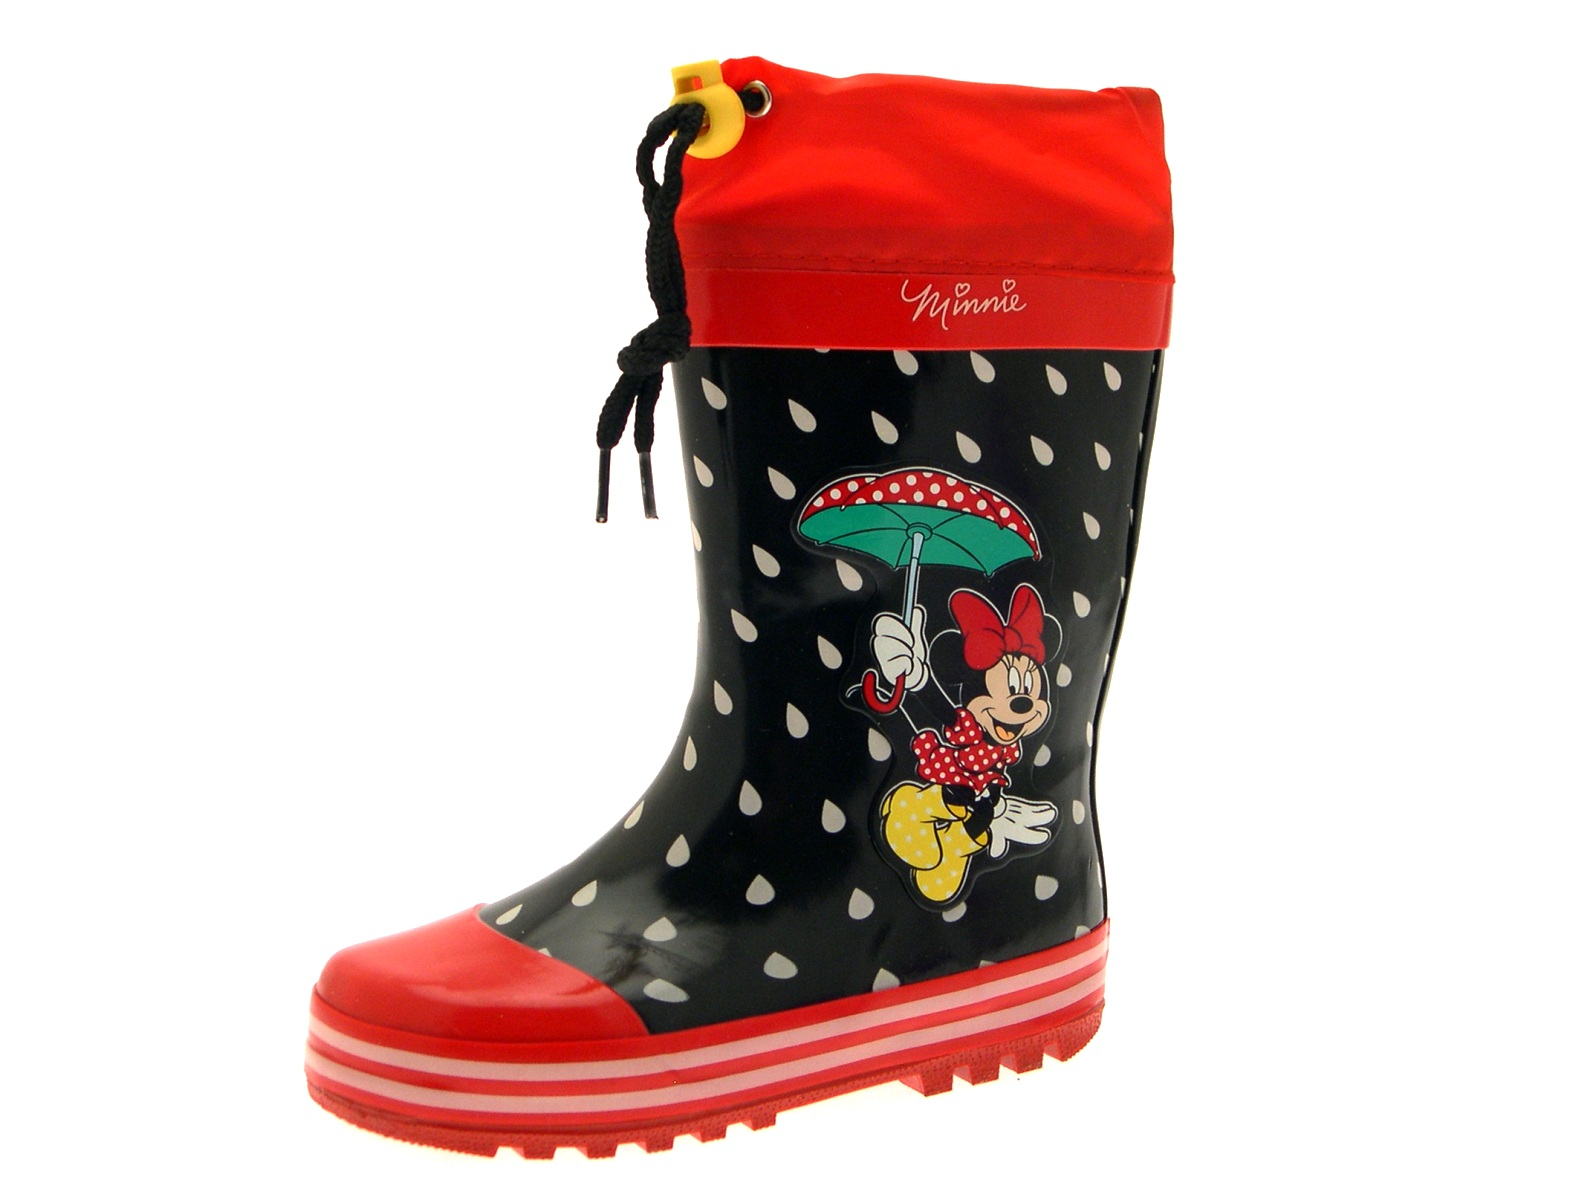 Girls Disney Minnie Mouse Rubber Snow Boots Wellies Wellingtons Size UK 10 - 2.5